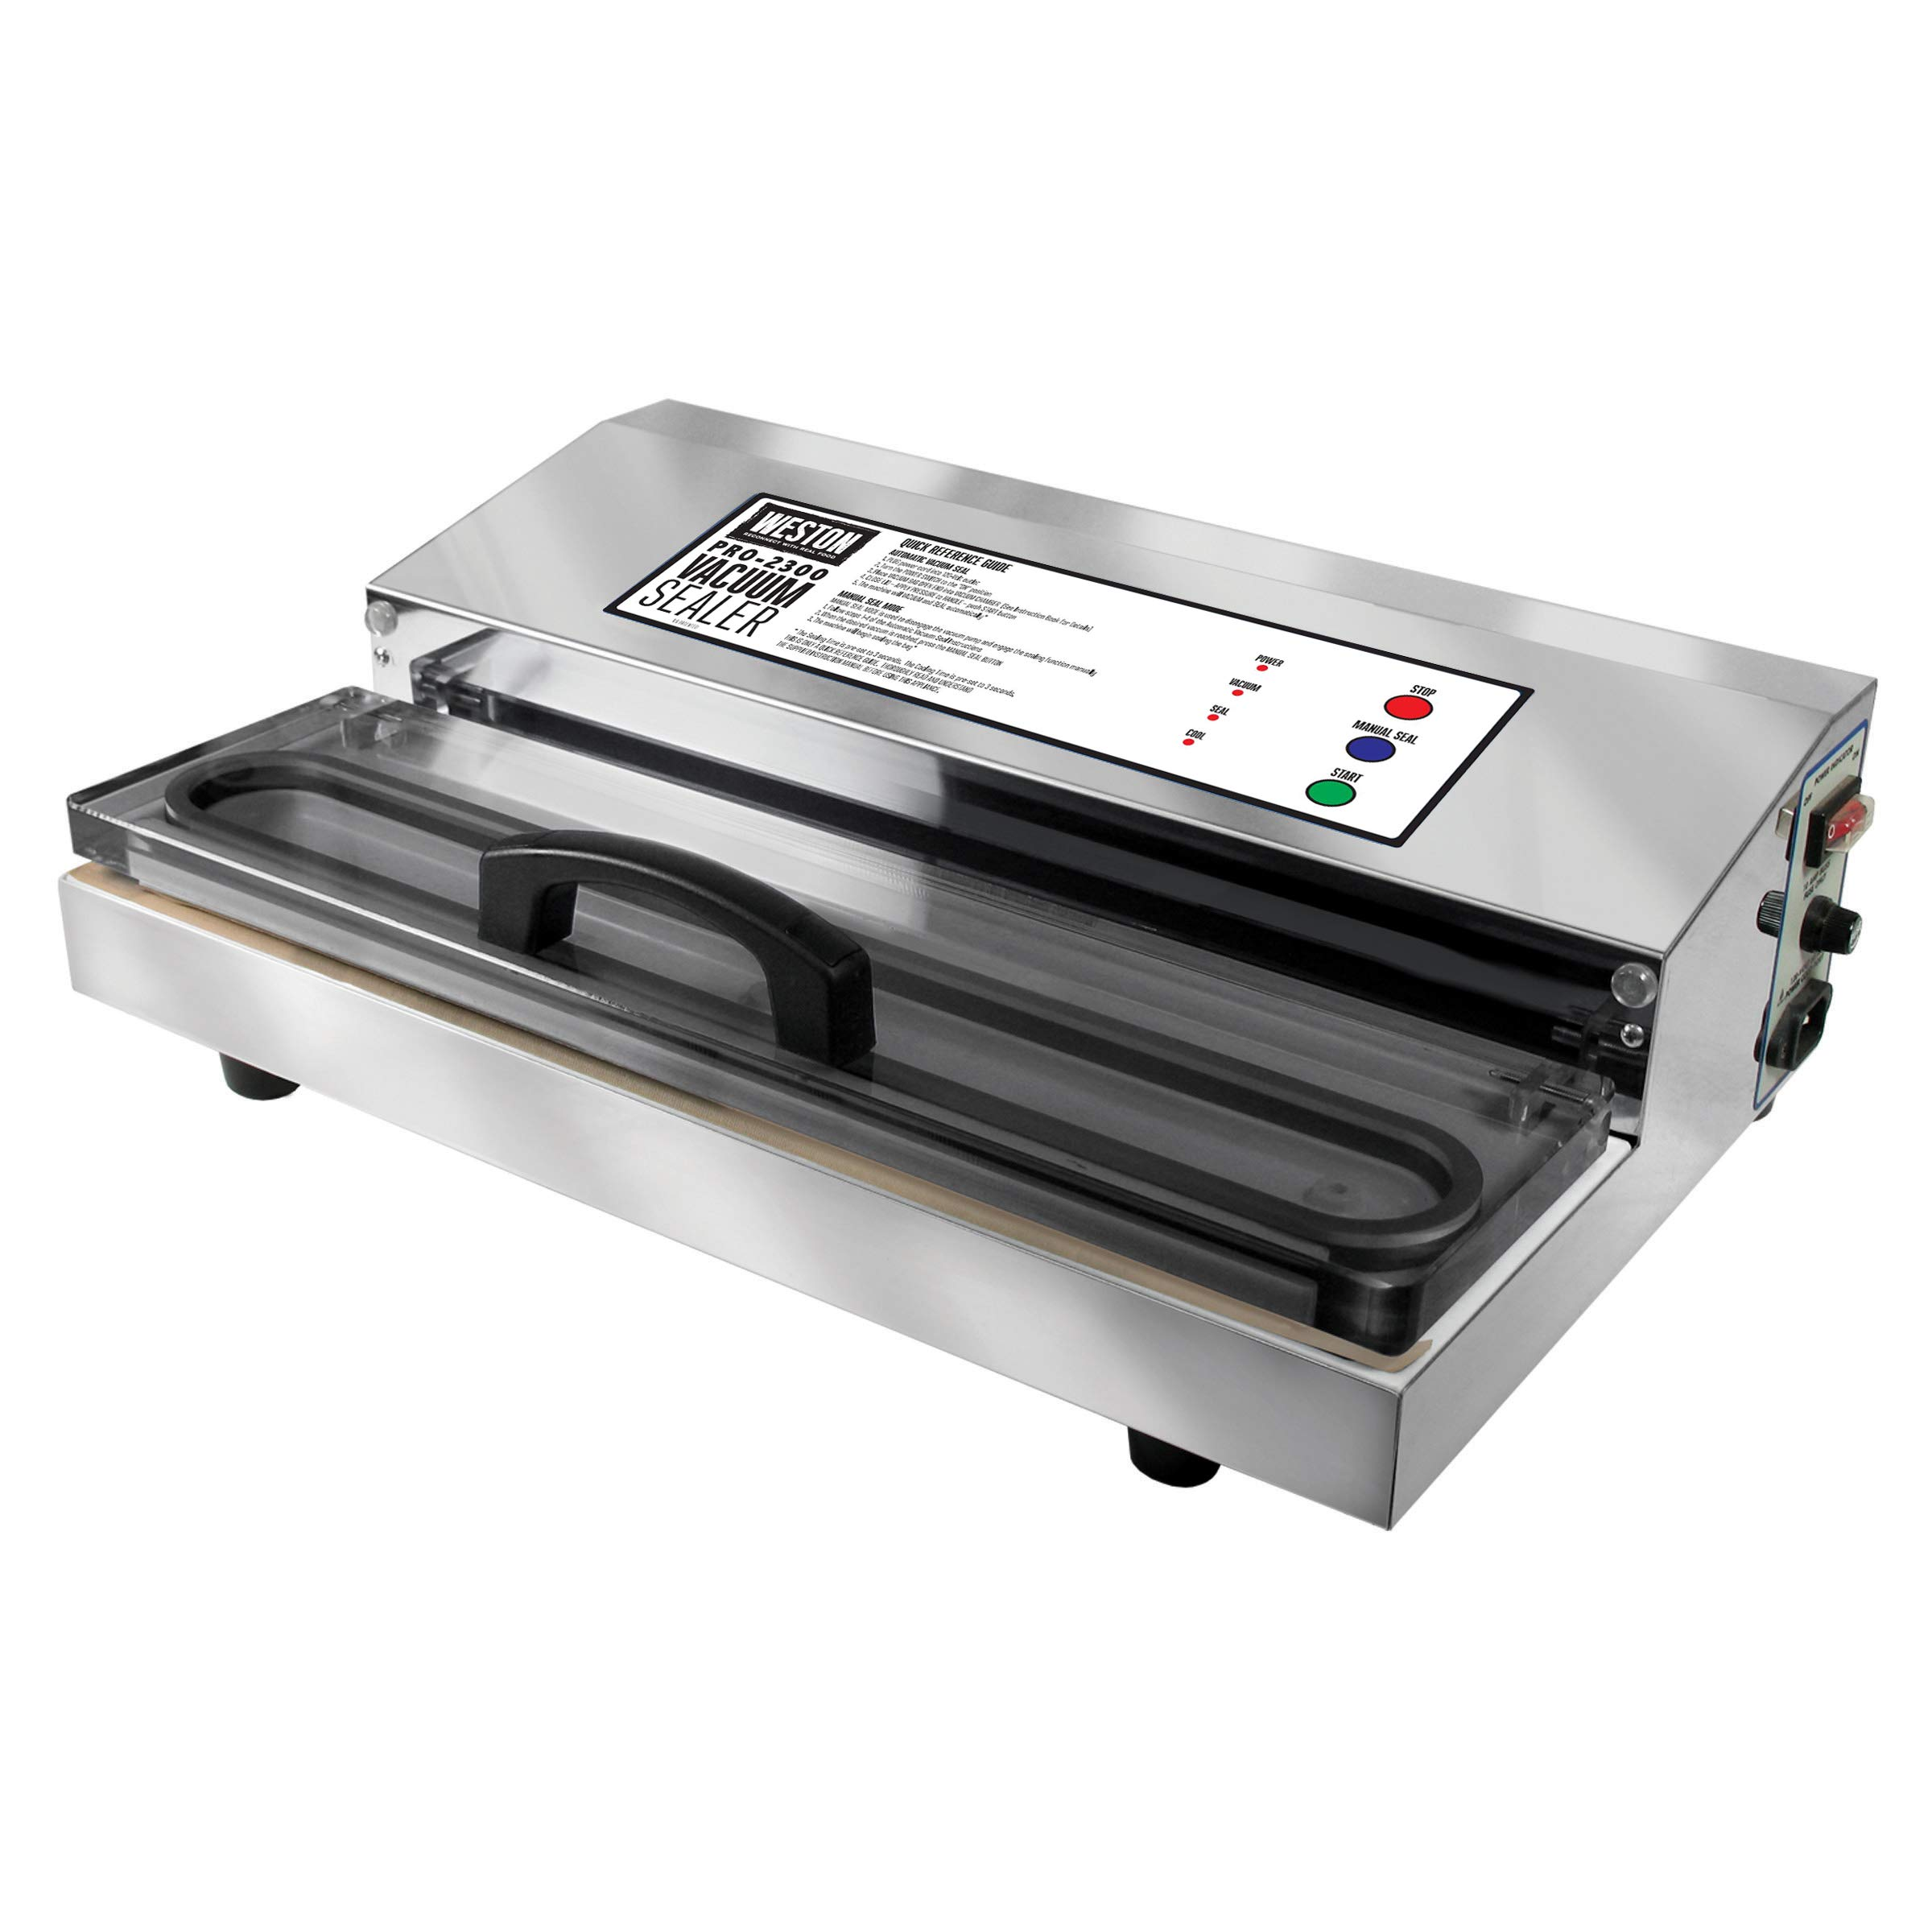 Weston Pro-2300 Commercial Grade Stainless Steel Vacuum Sealer (65-0201), Double Piston Pump by Weston